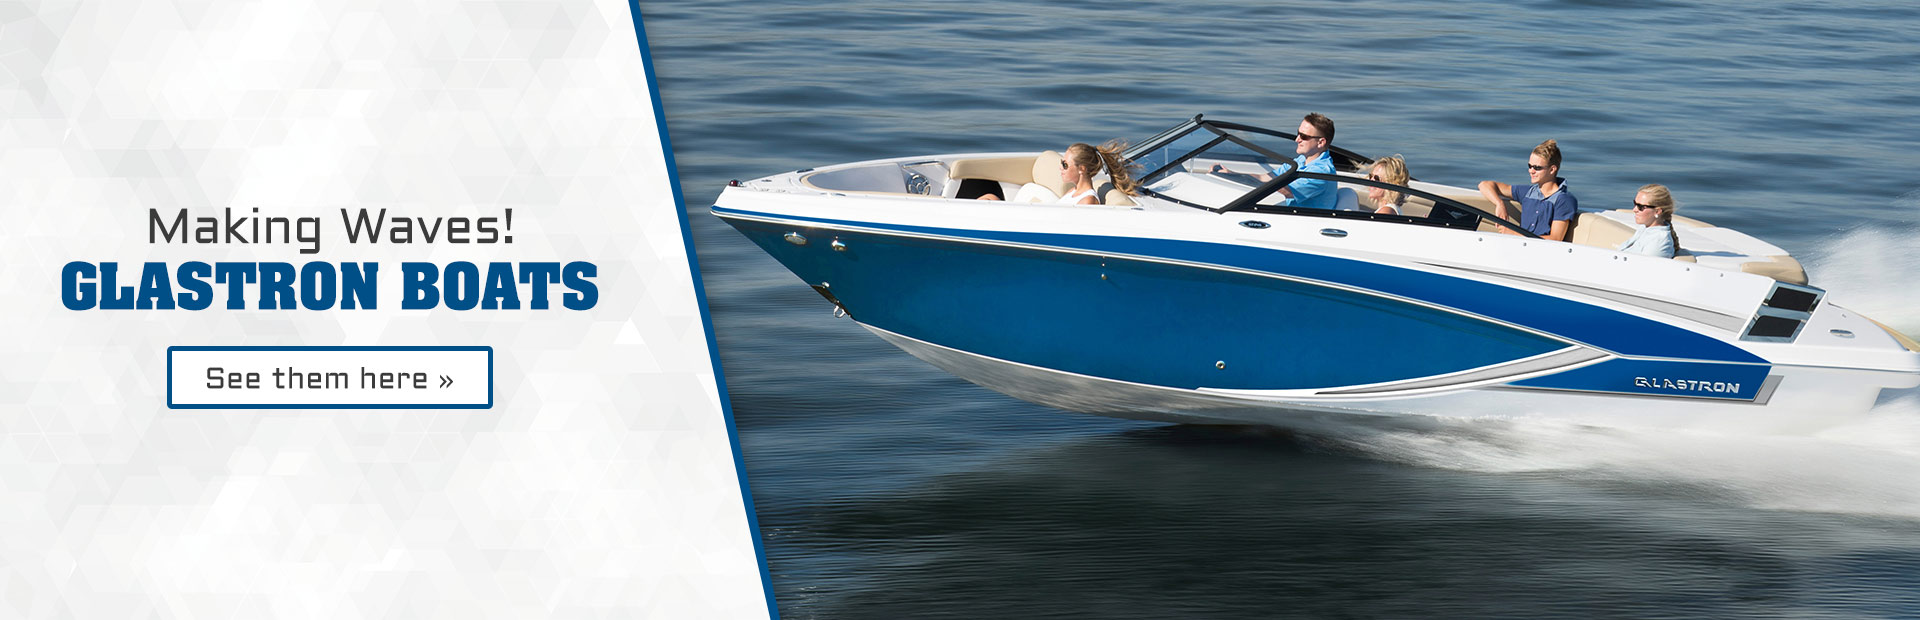 Glastron Boats: Click here to view the models.